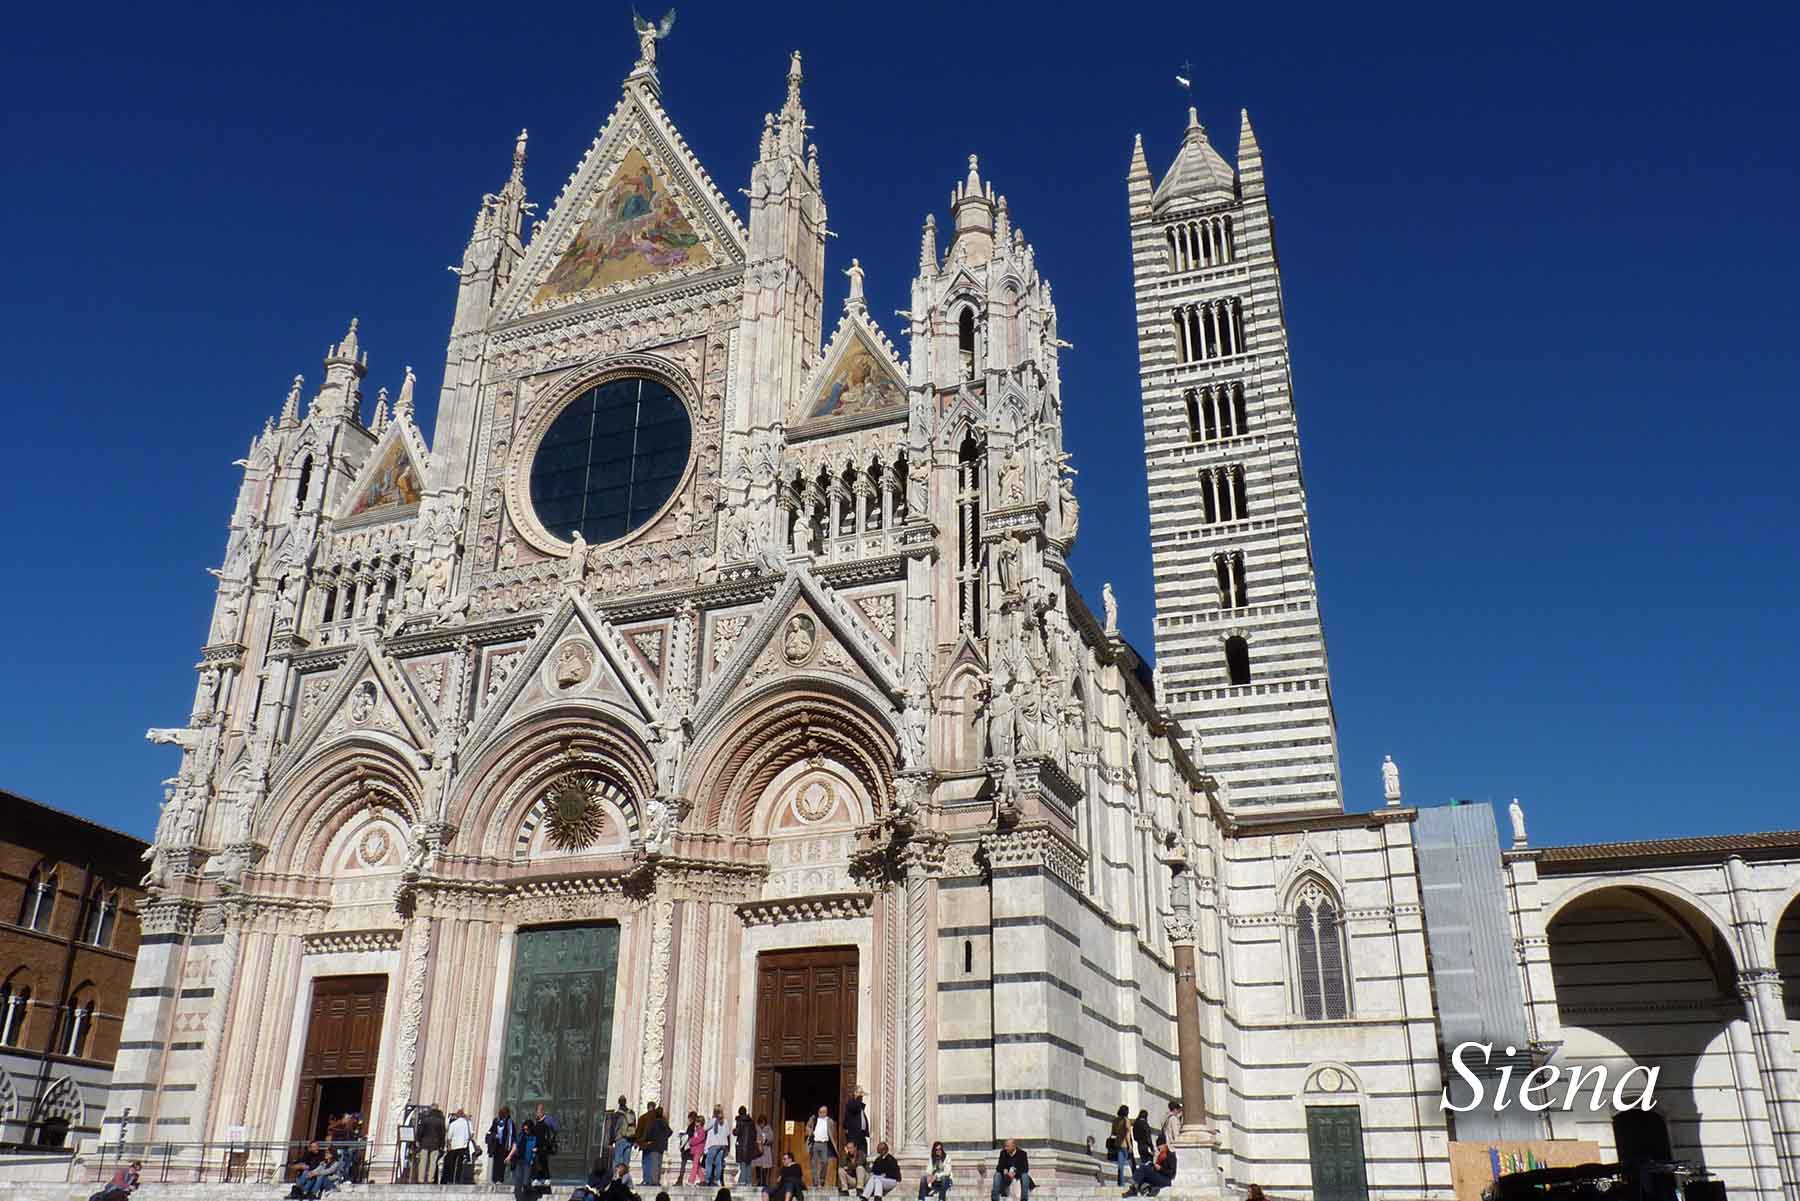 Siena Dome - Best places to visit in Tuscany